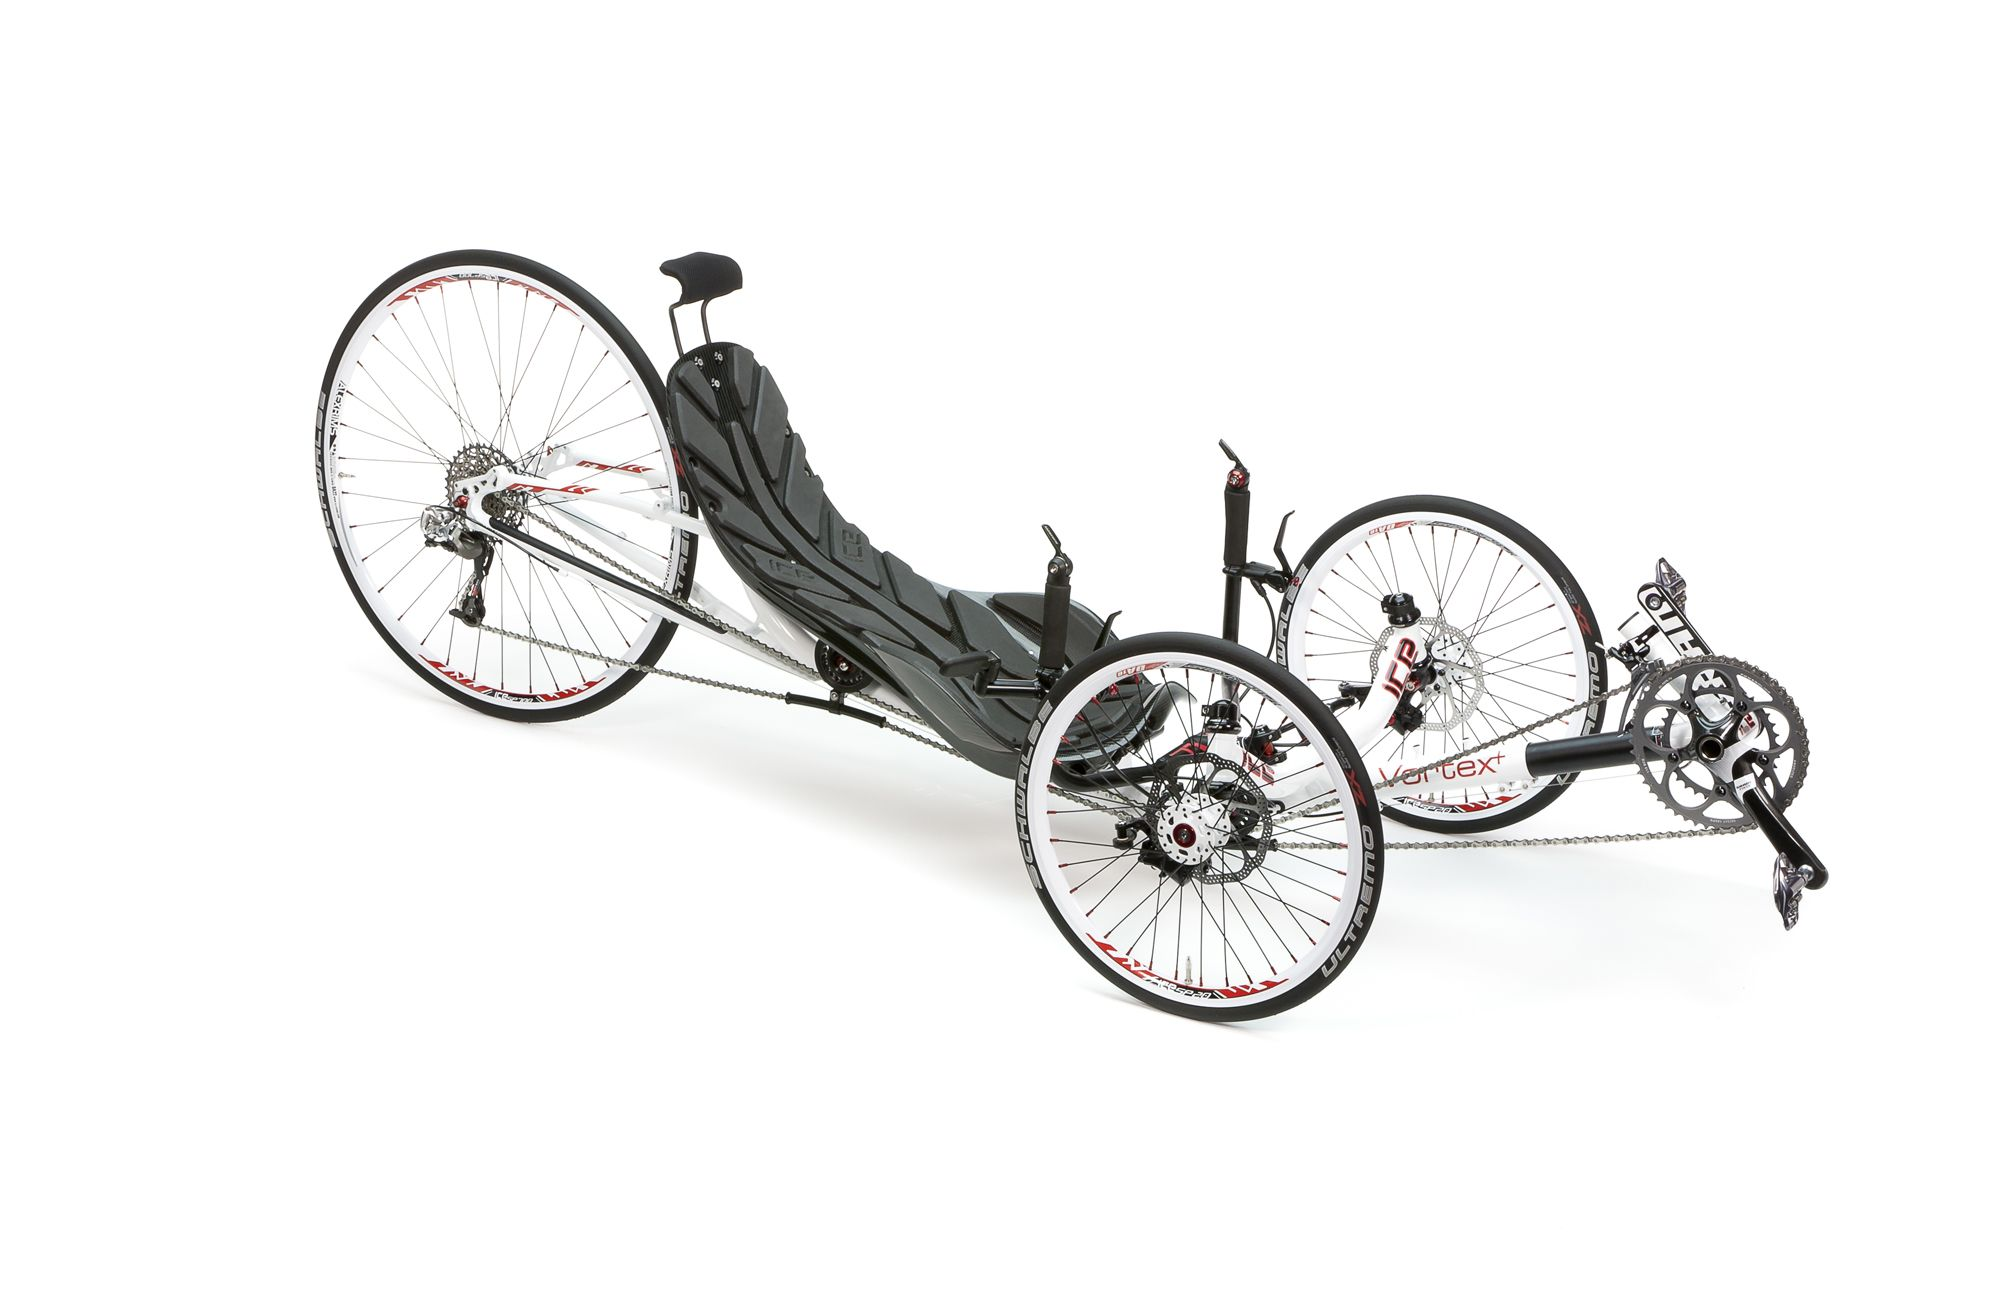 Been meaning to pin a recumbent bike for a while, but